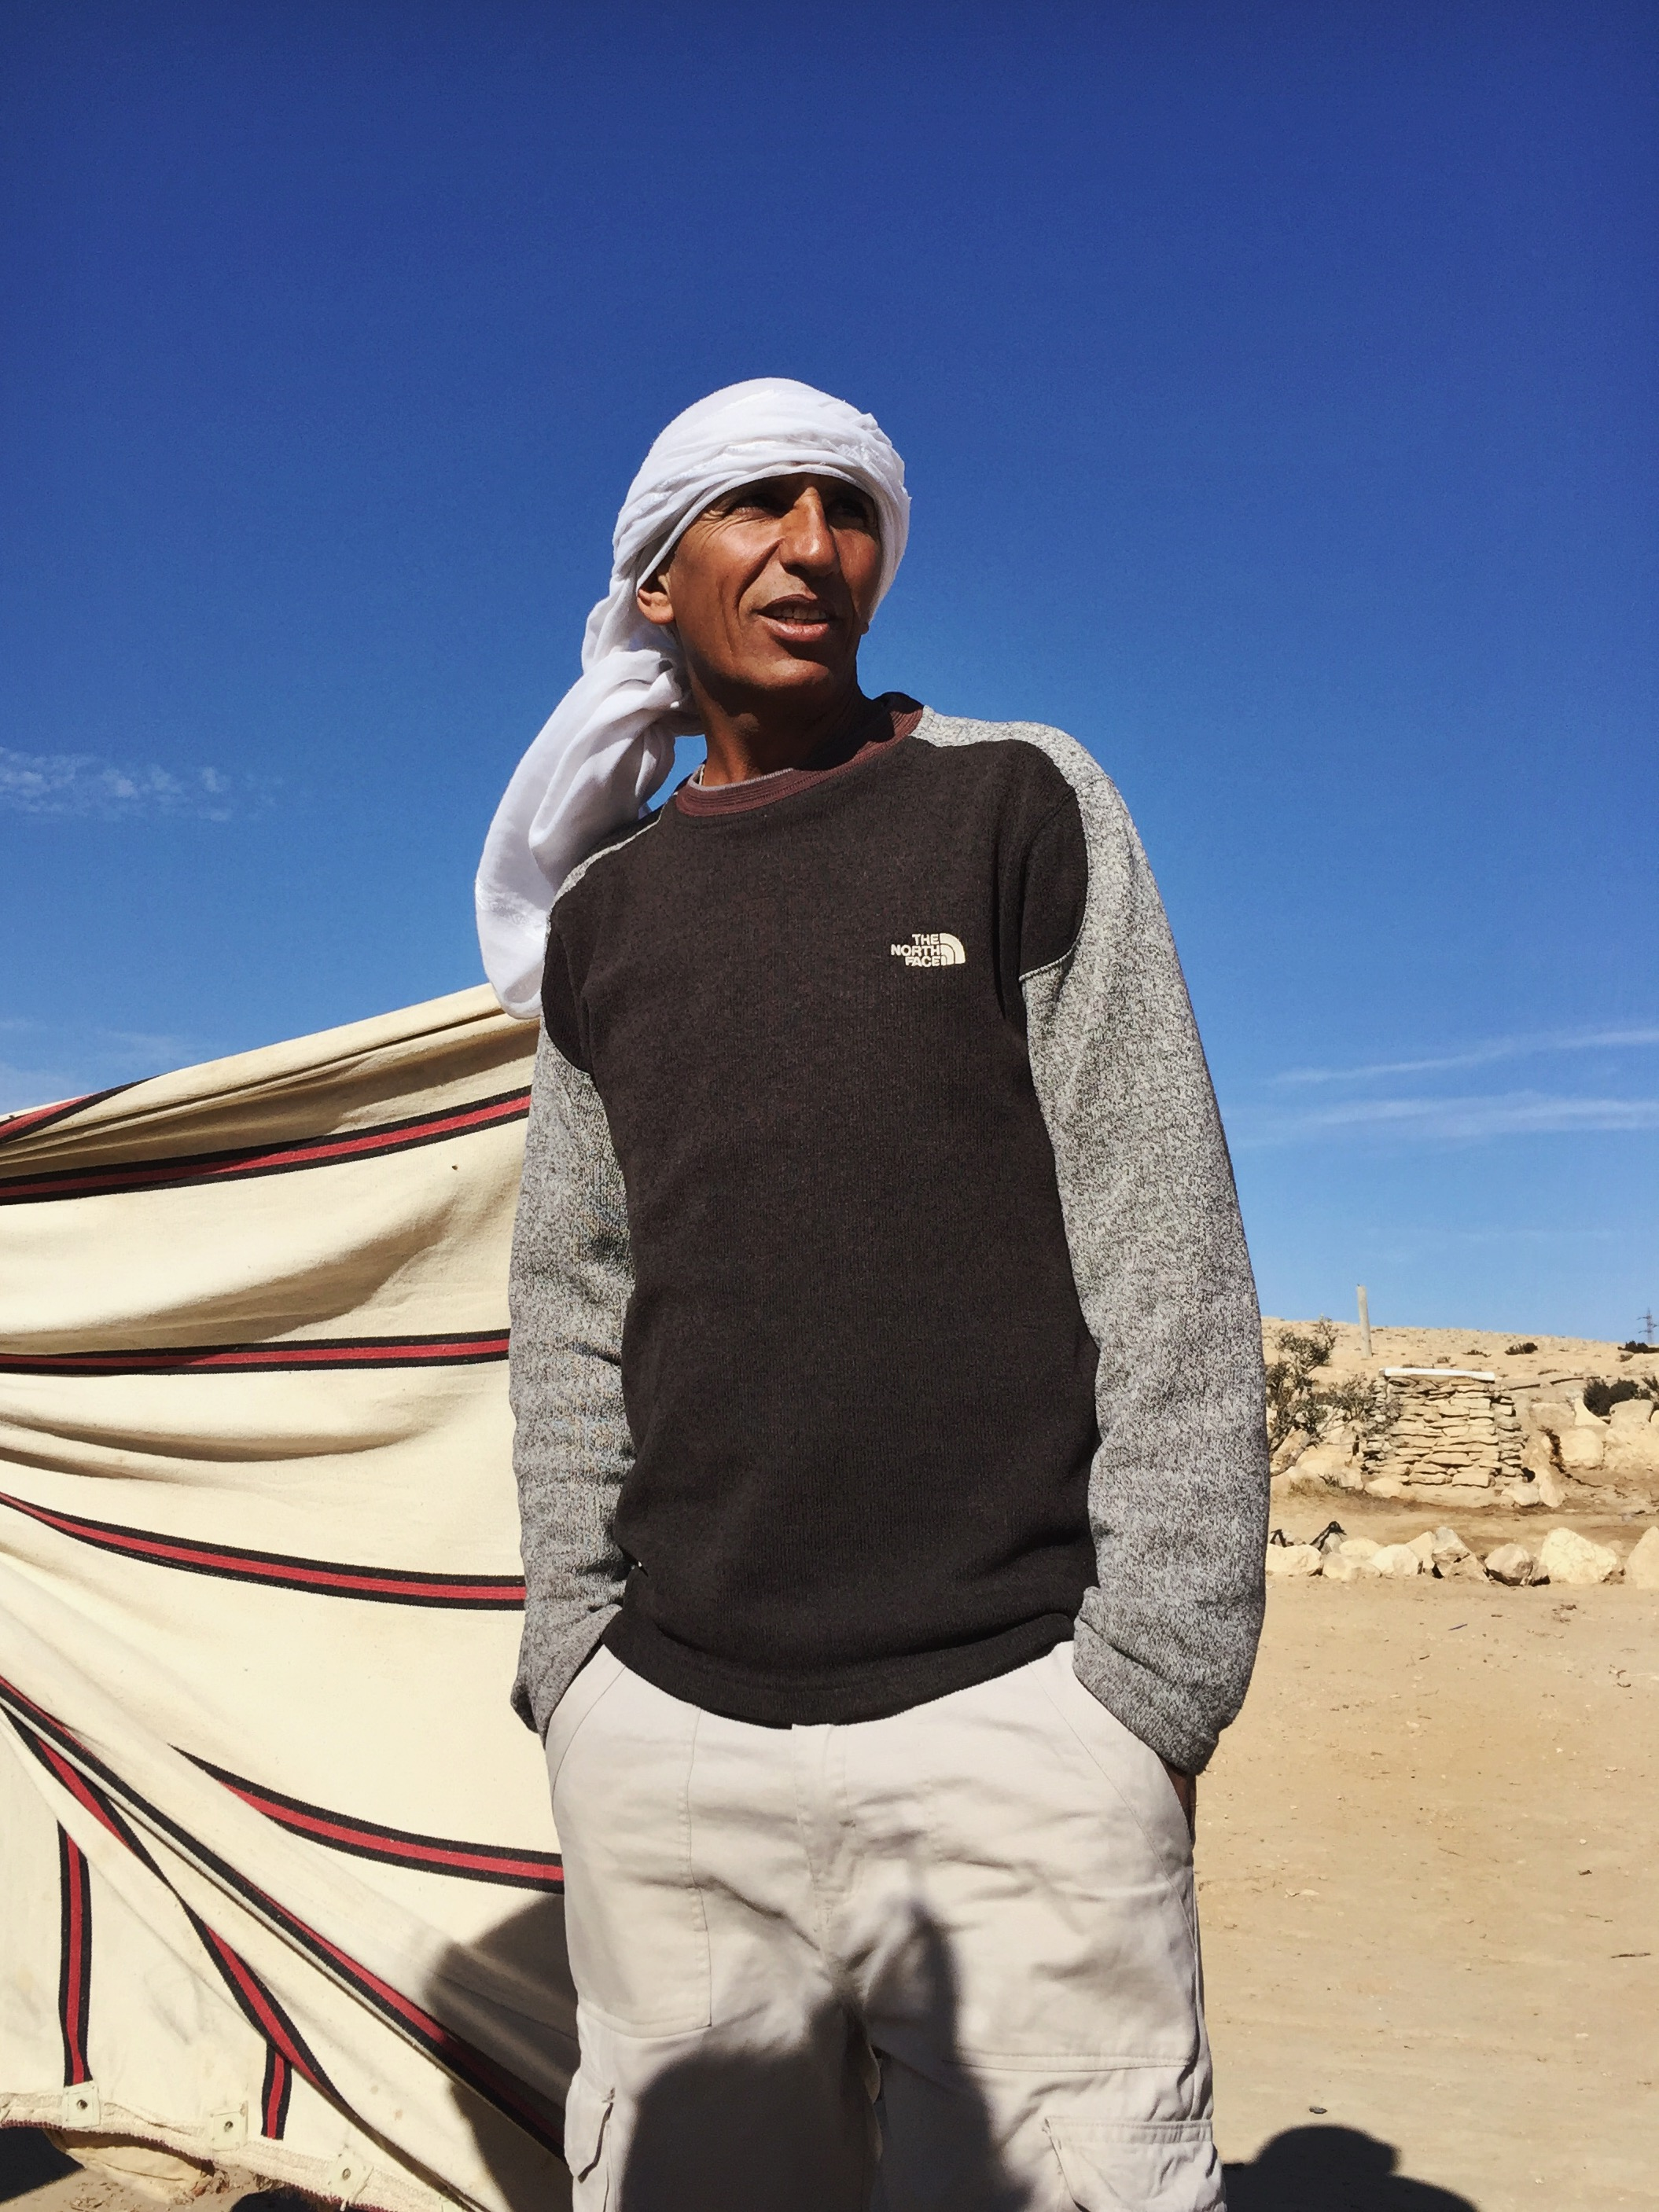 Salman Sadan, photographed in Wadi Aricha, in the Negev Desert.